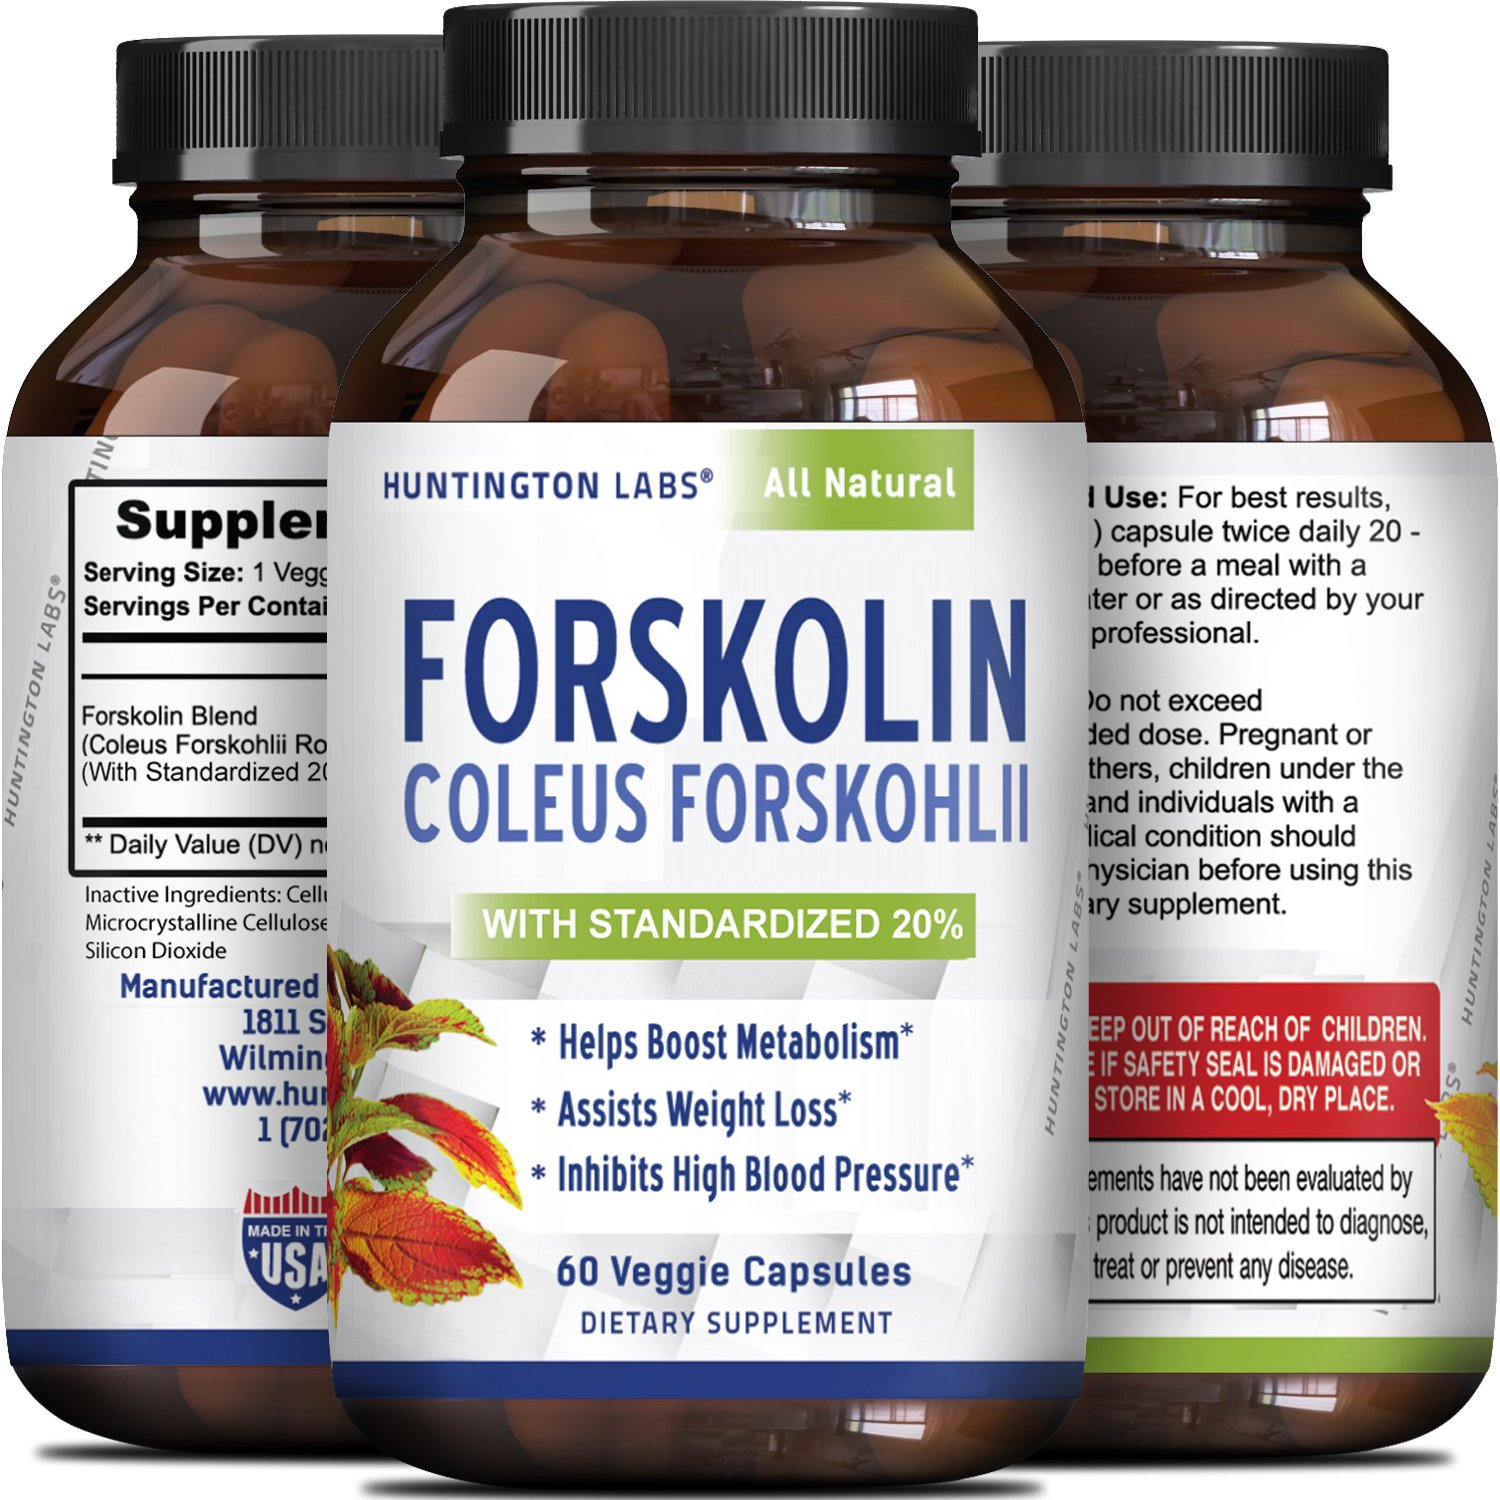 Coleus Forskholii - Pure Forskolin Root Extract Pills - Natural Diet Pills - Herbal Weight Loss Fat Burner - Metabolism Booster for Men and Women - 60 veggie capsules - By Huntington Labs